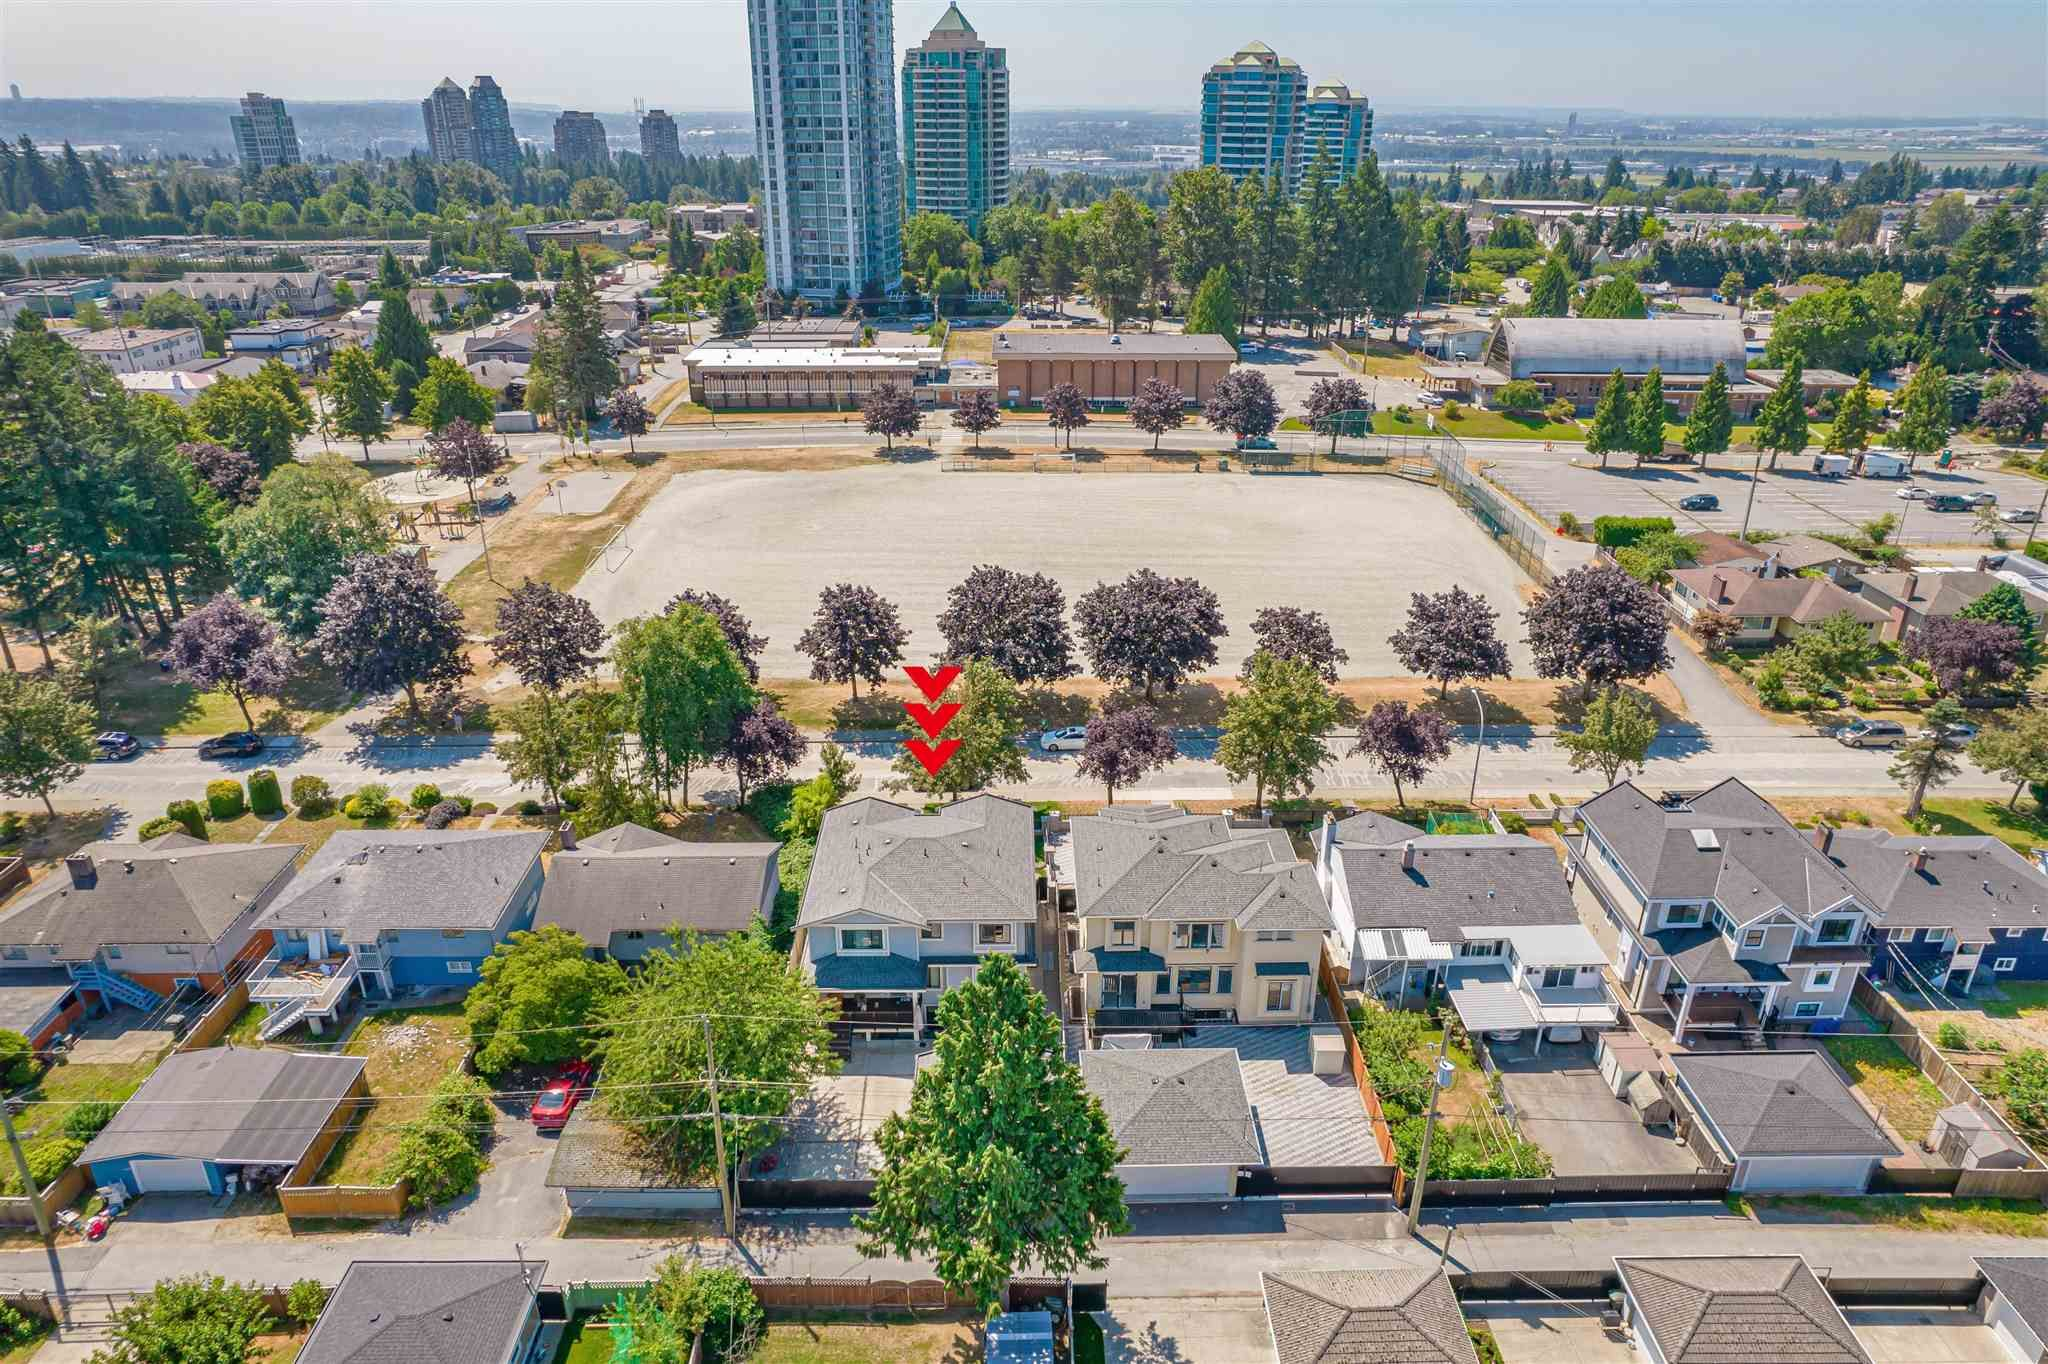 Main Photo: 6655 ELWELL Street in Burnaby: Highgate House for sale (Burnaby South)  : MLS®# R2601997